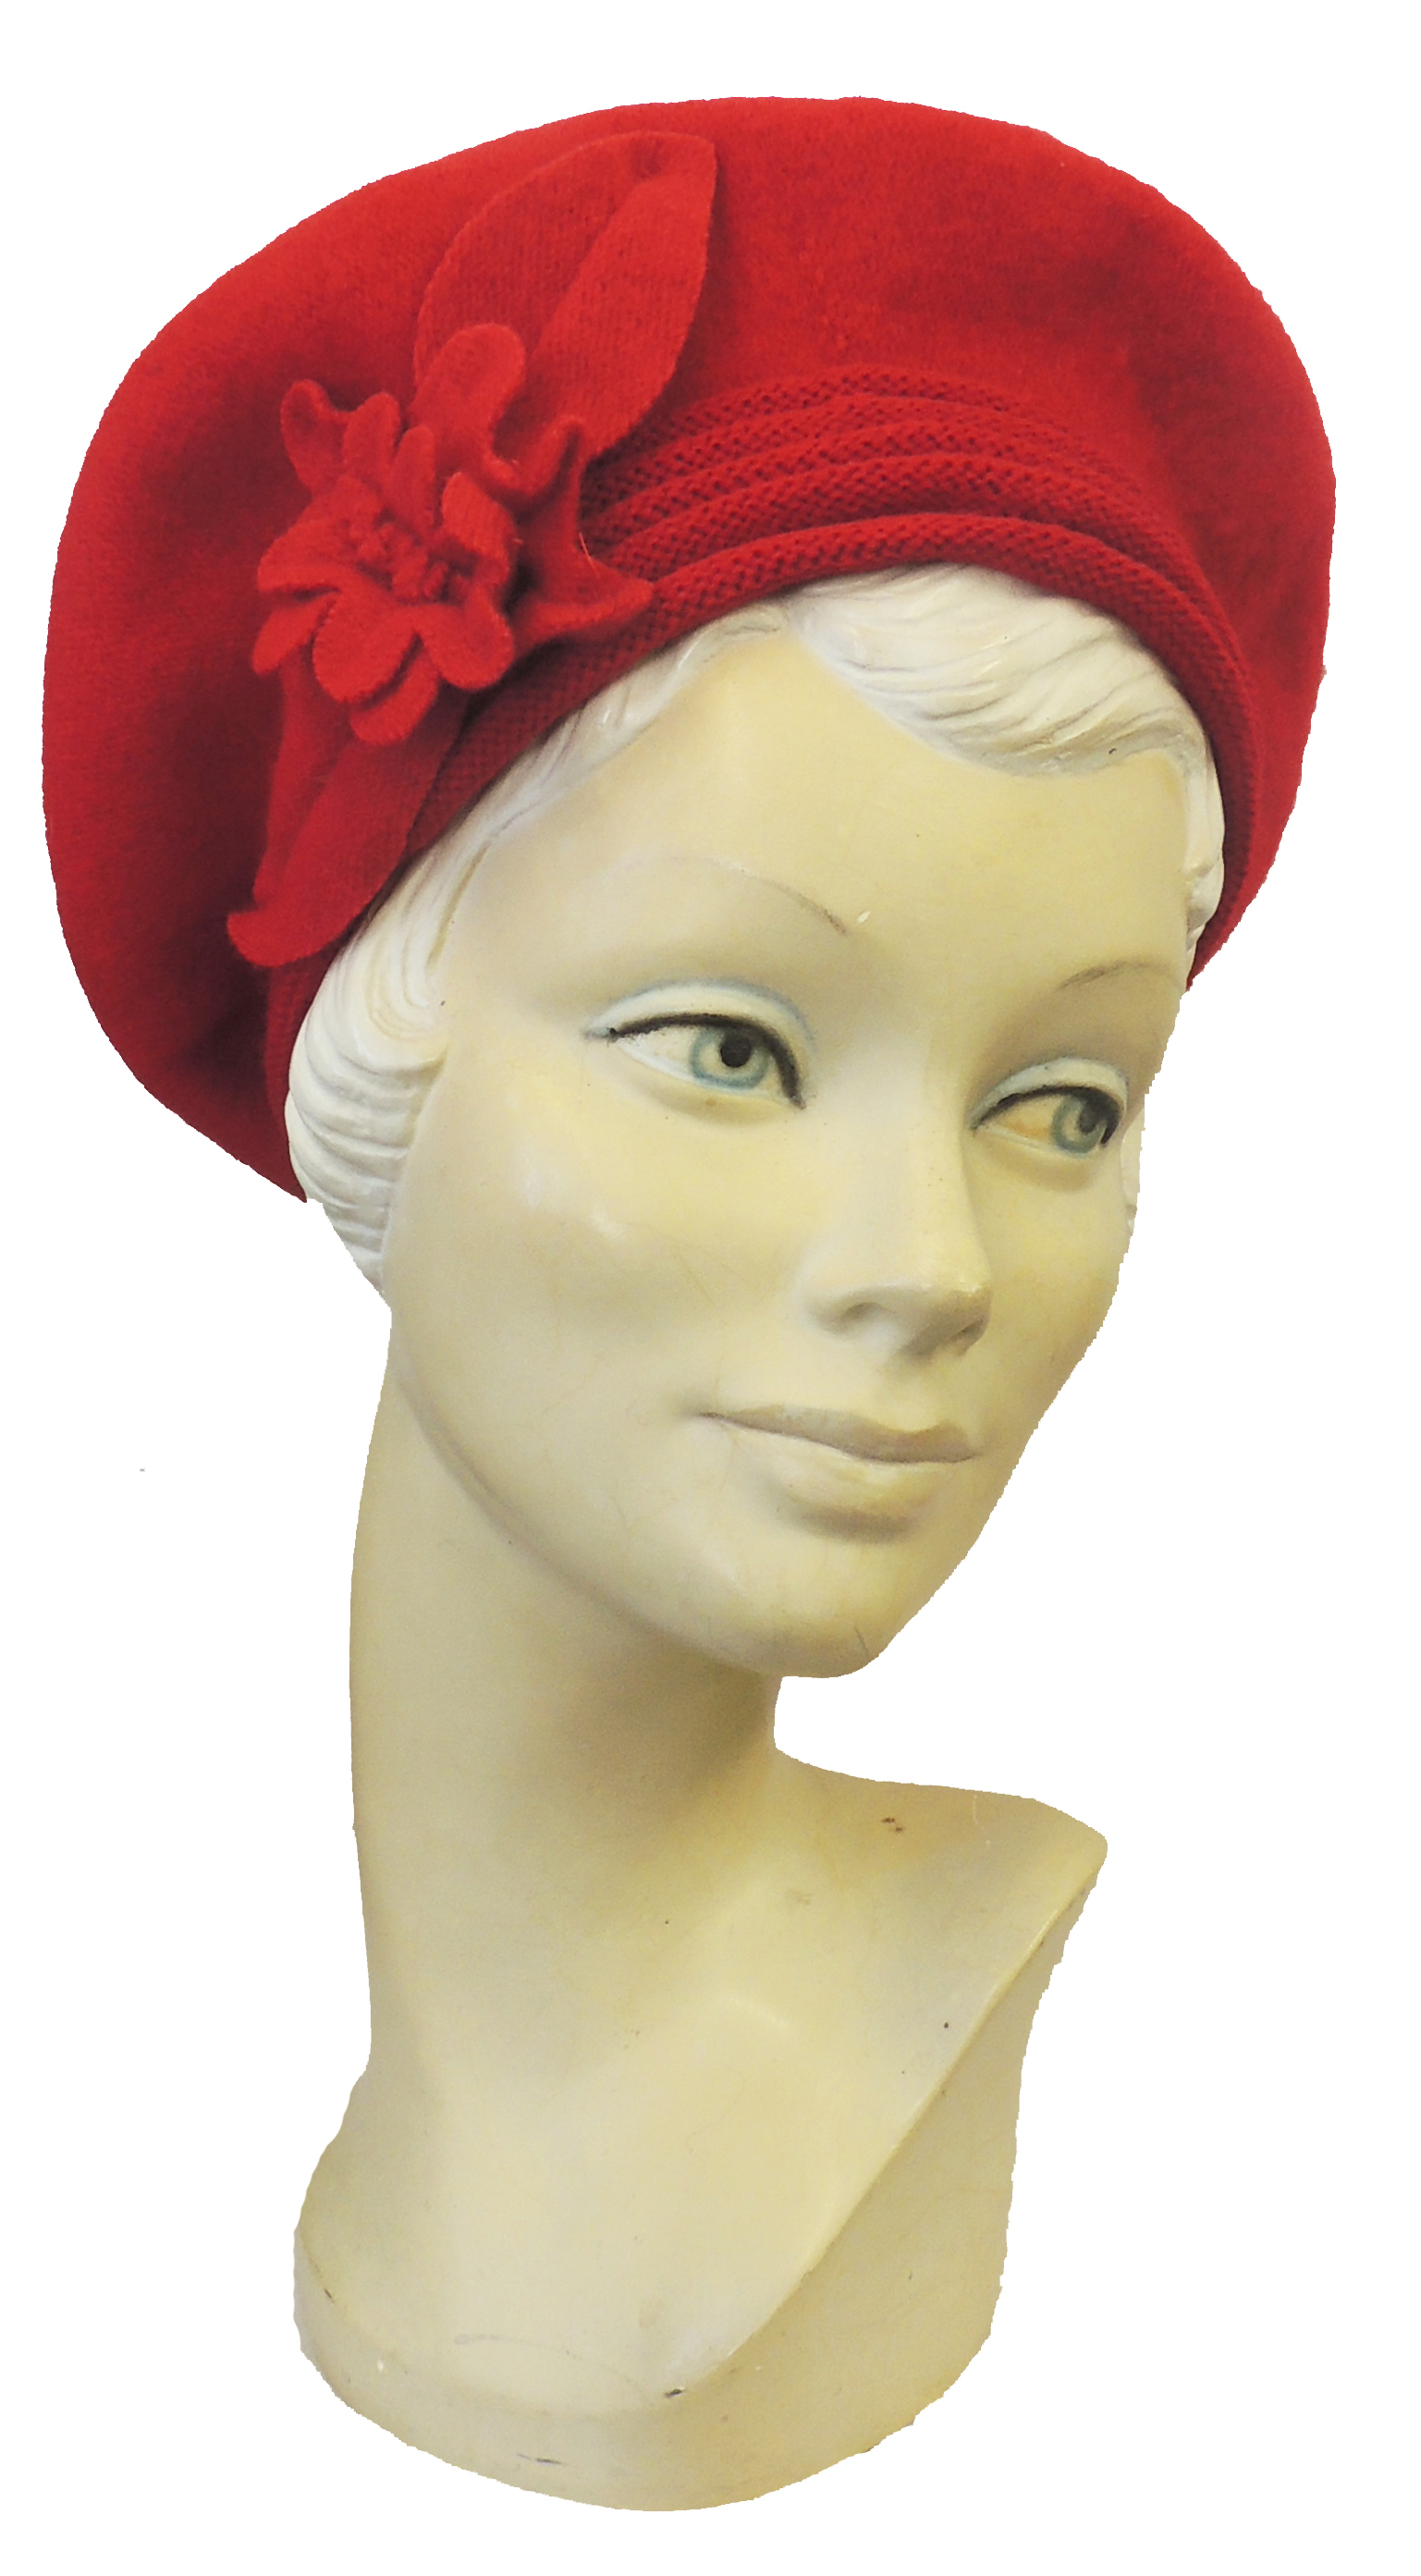 1940s Style Hats    New Ladies VTG 1930s 40s WW2 Wartime Felt Flower Knit Halo Beret Hat $16.99 AT vintagedancer.com